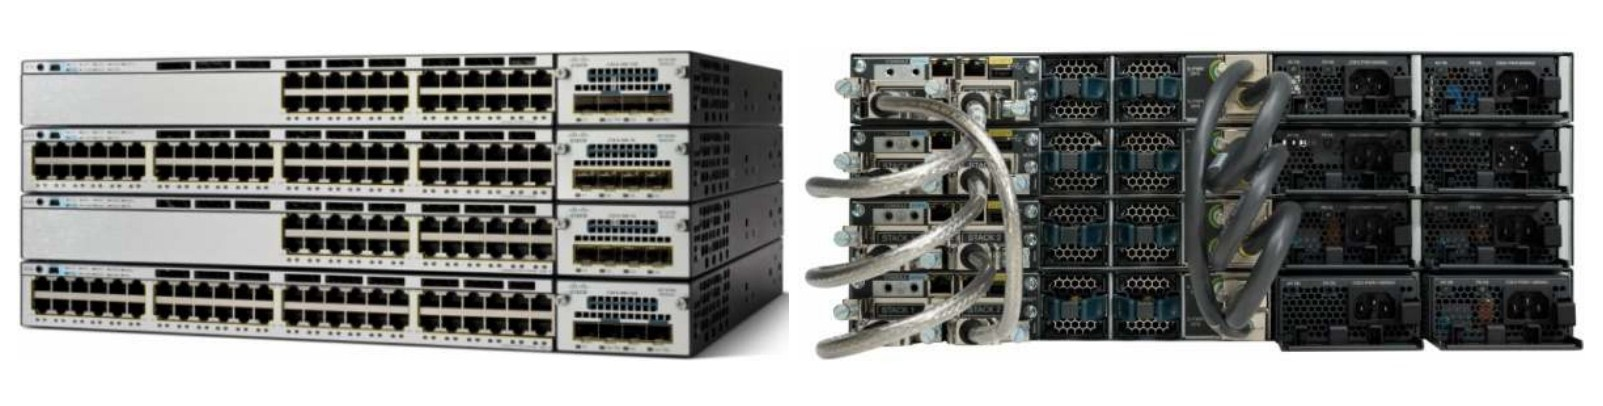 Коммутатор Cisco Catalyst WS-C3750X-48PF-S (134-201) - 2